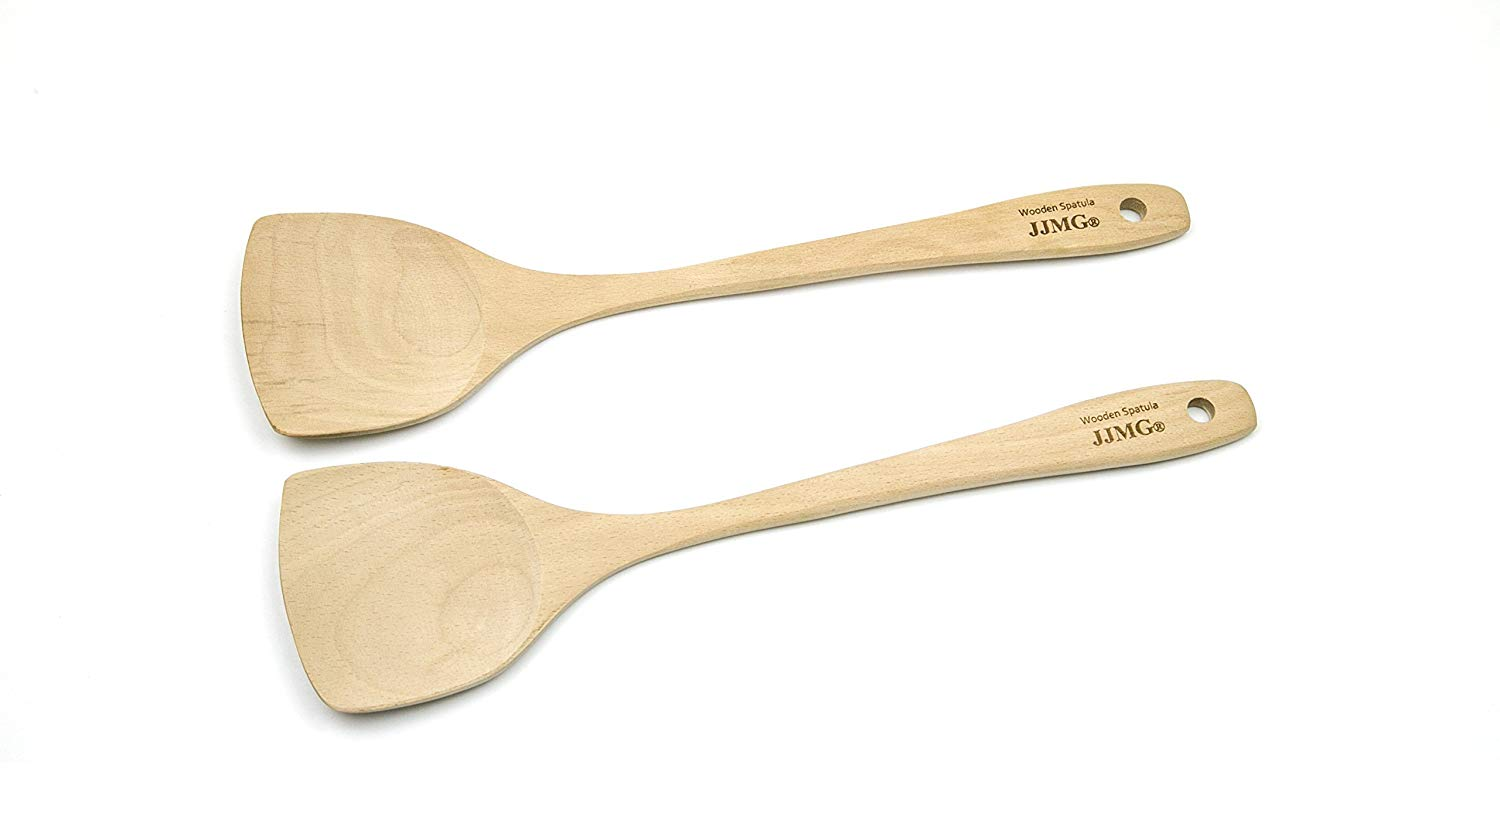 JJMG Wood Wok Spatula (Pack of 2)